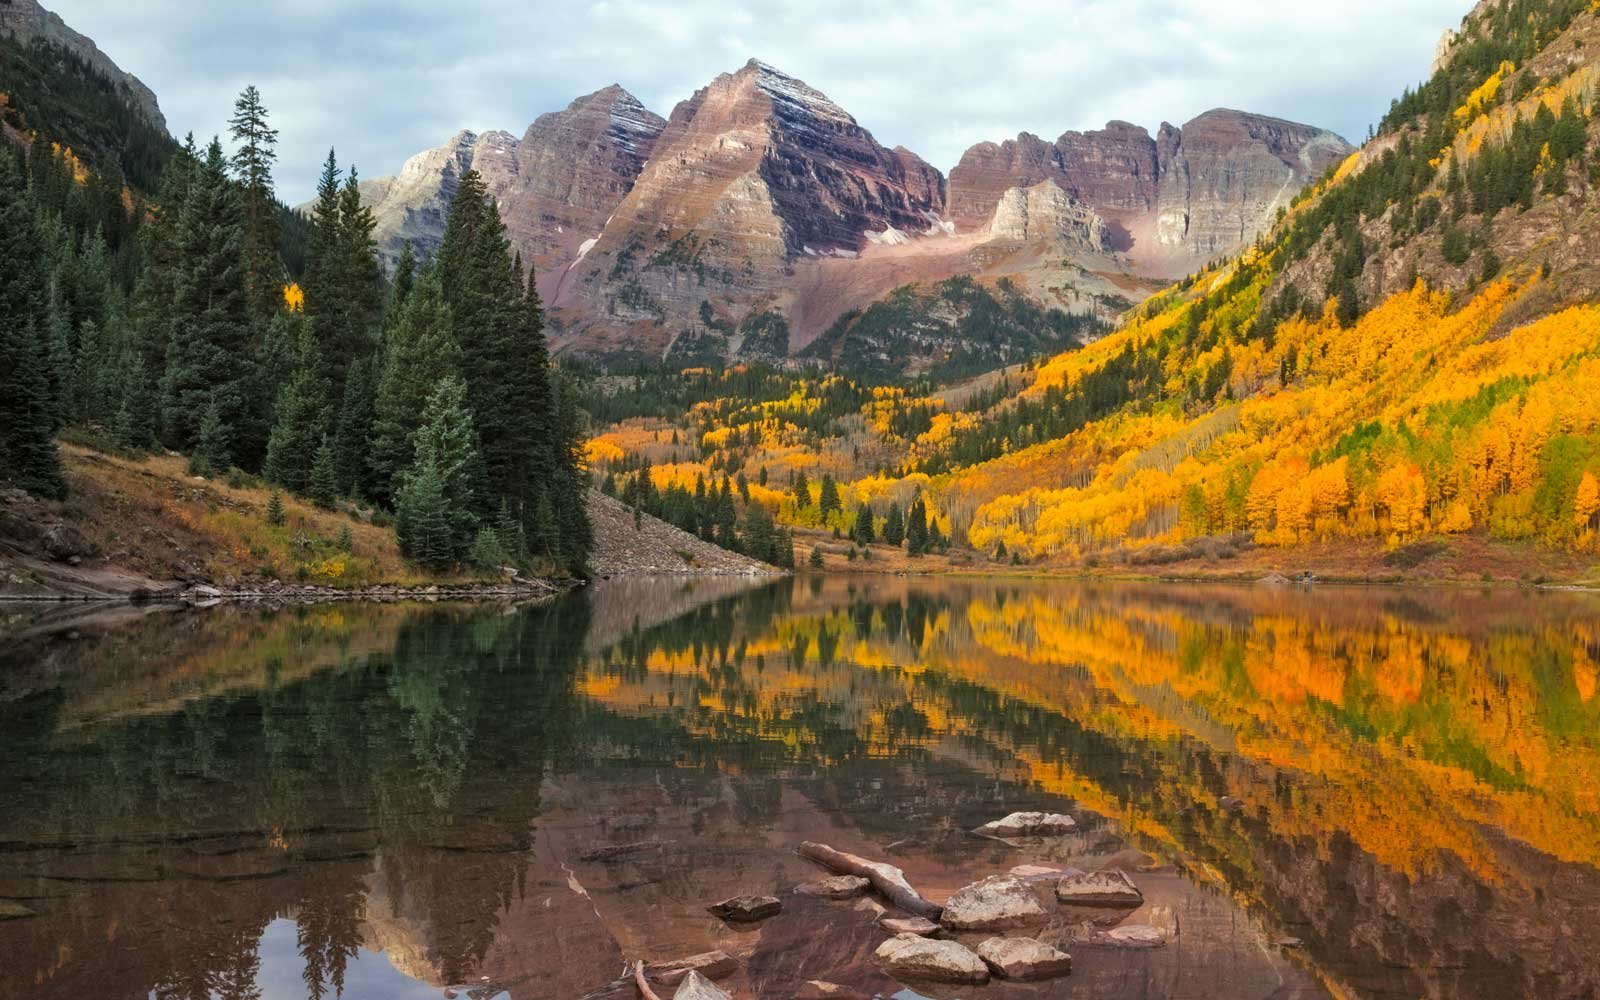 Fall Foliage at Maroon Bells Peaks near Aspen Colorado